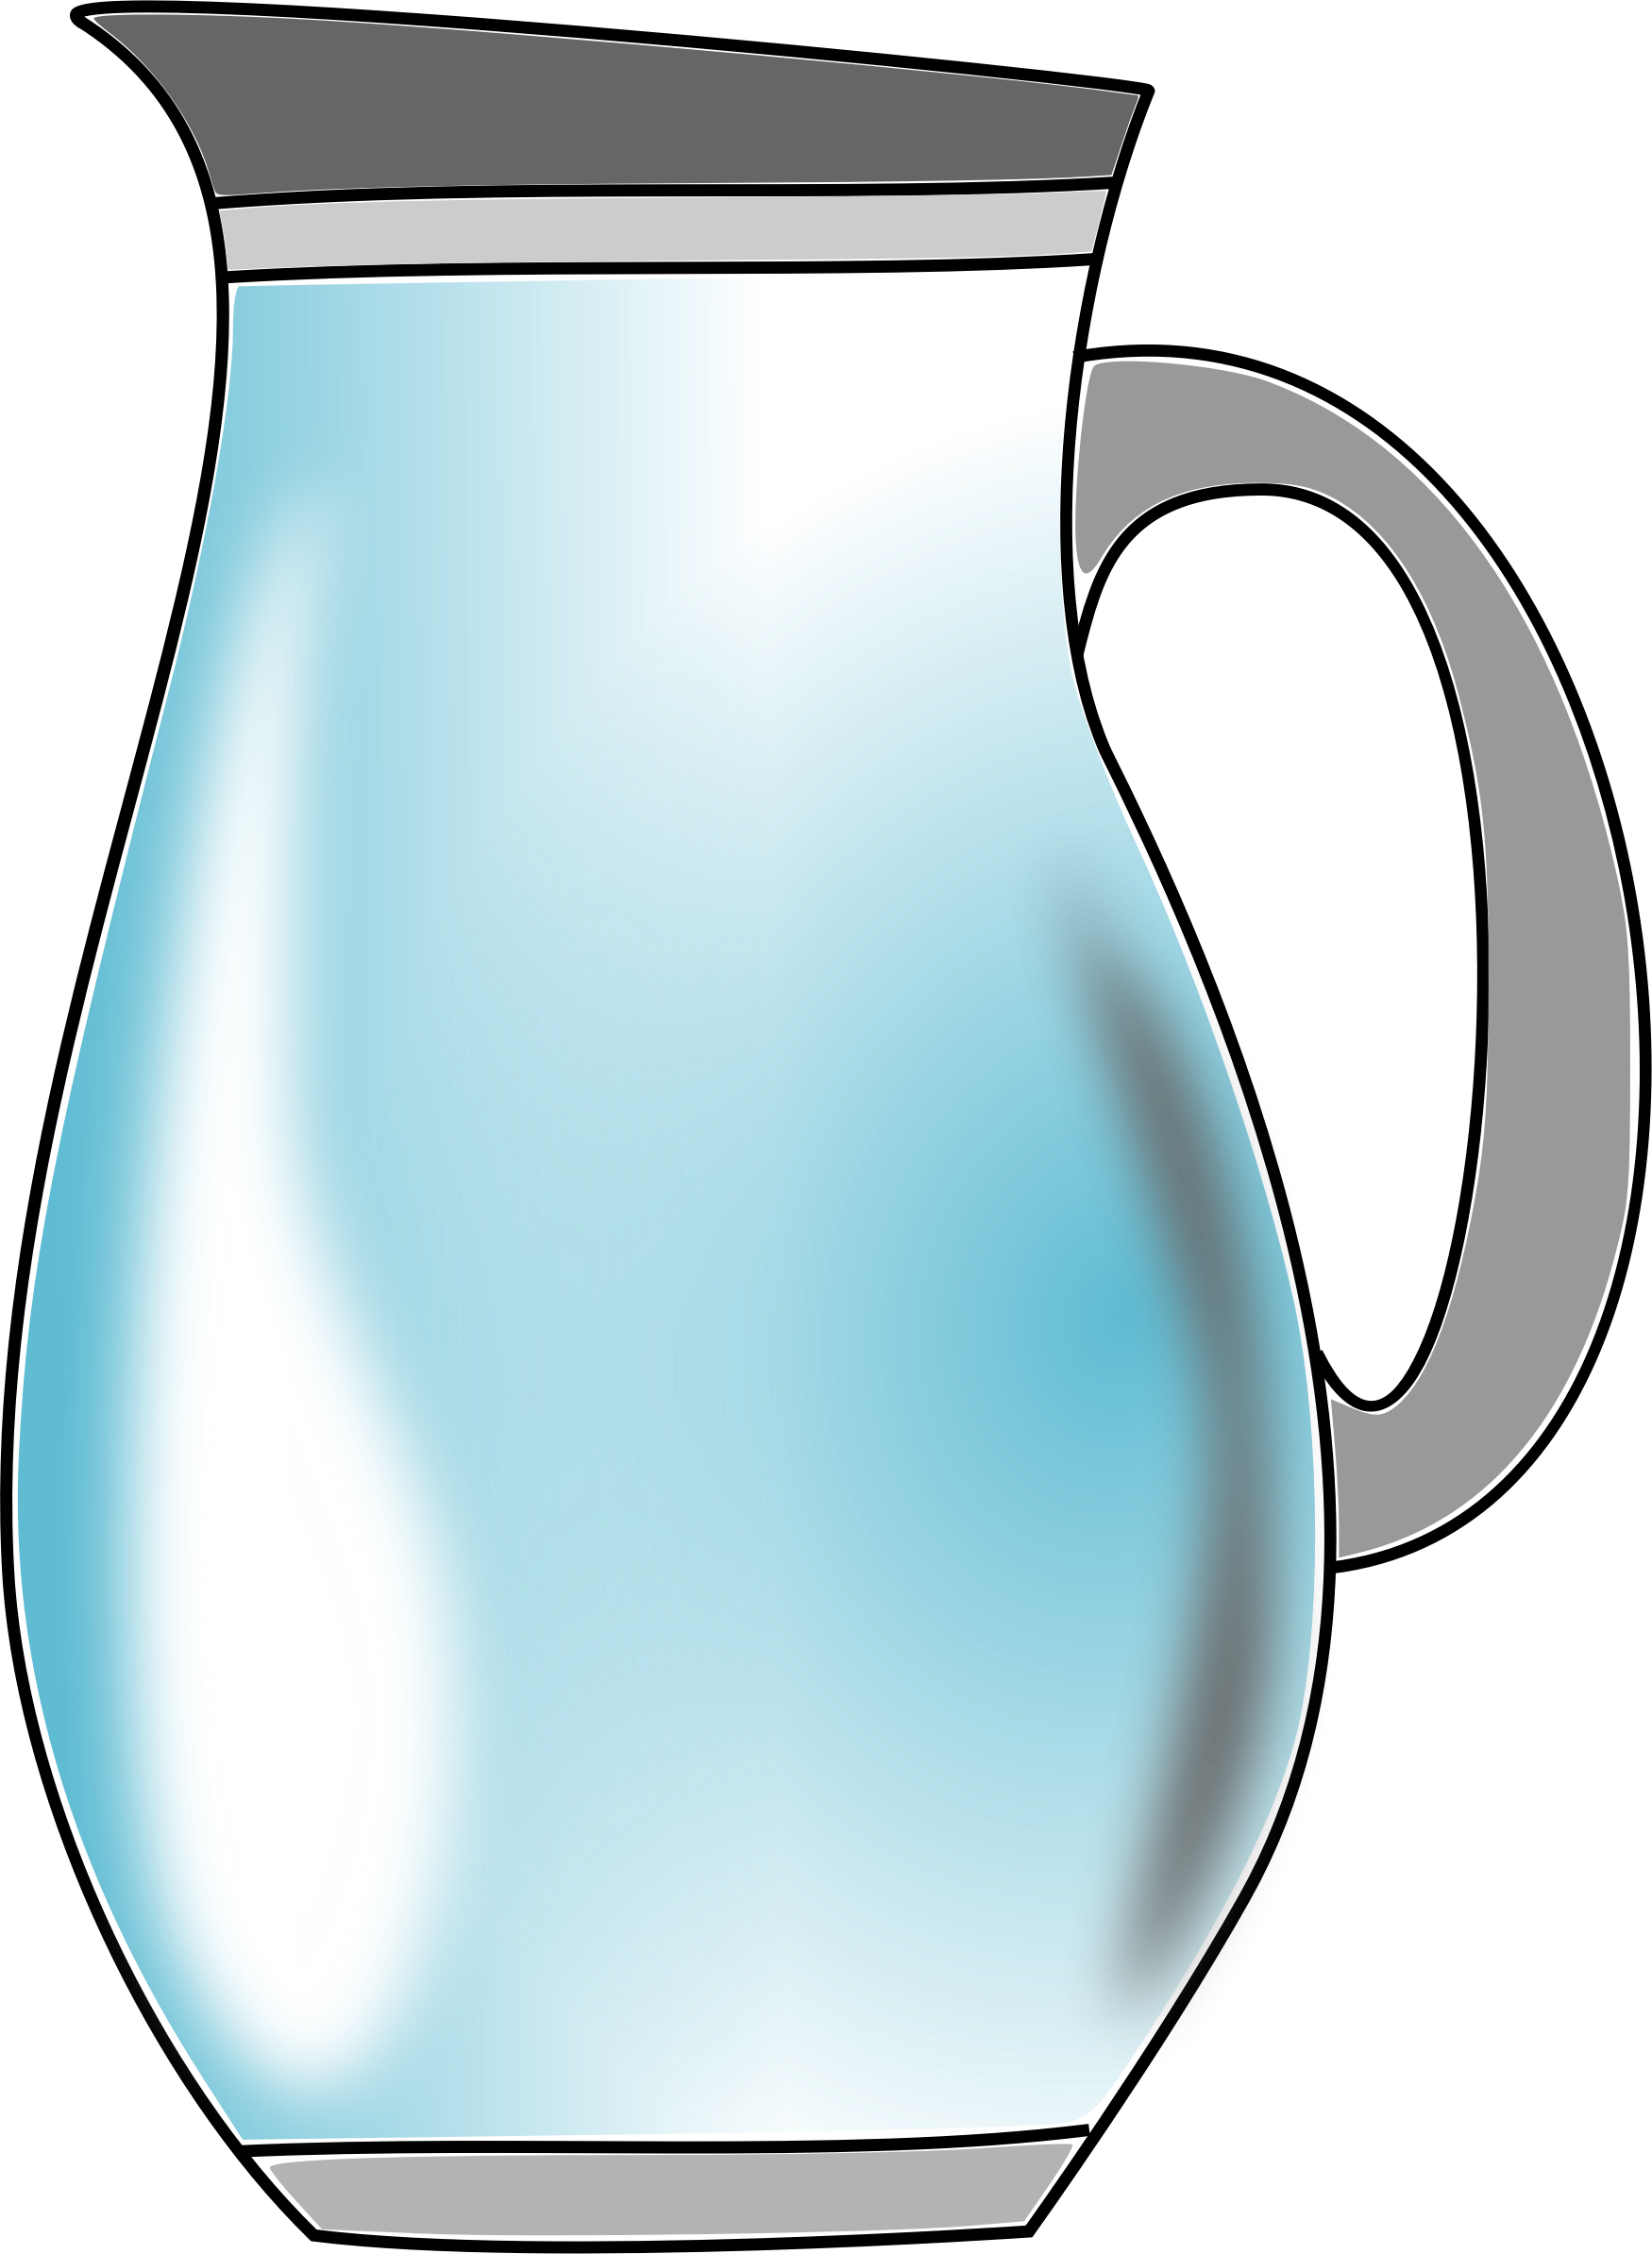 pitcher by cprostire